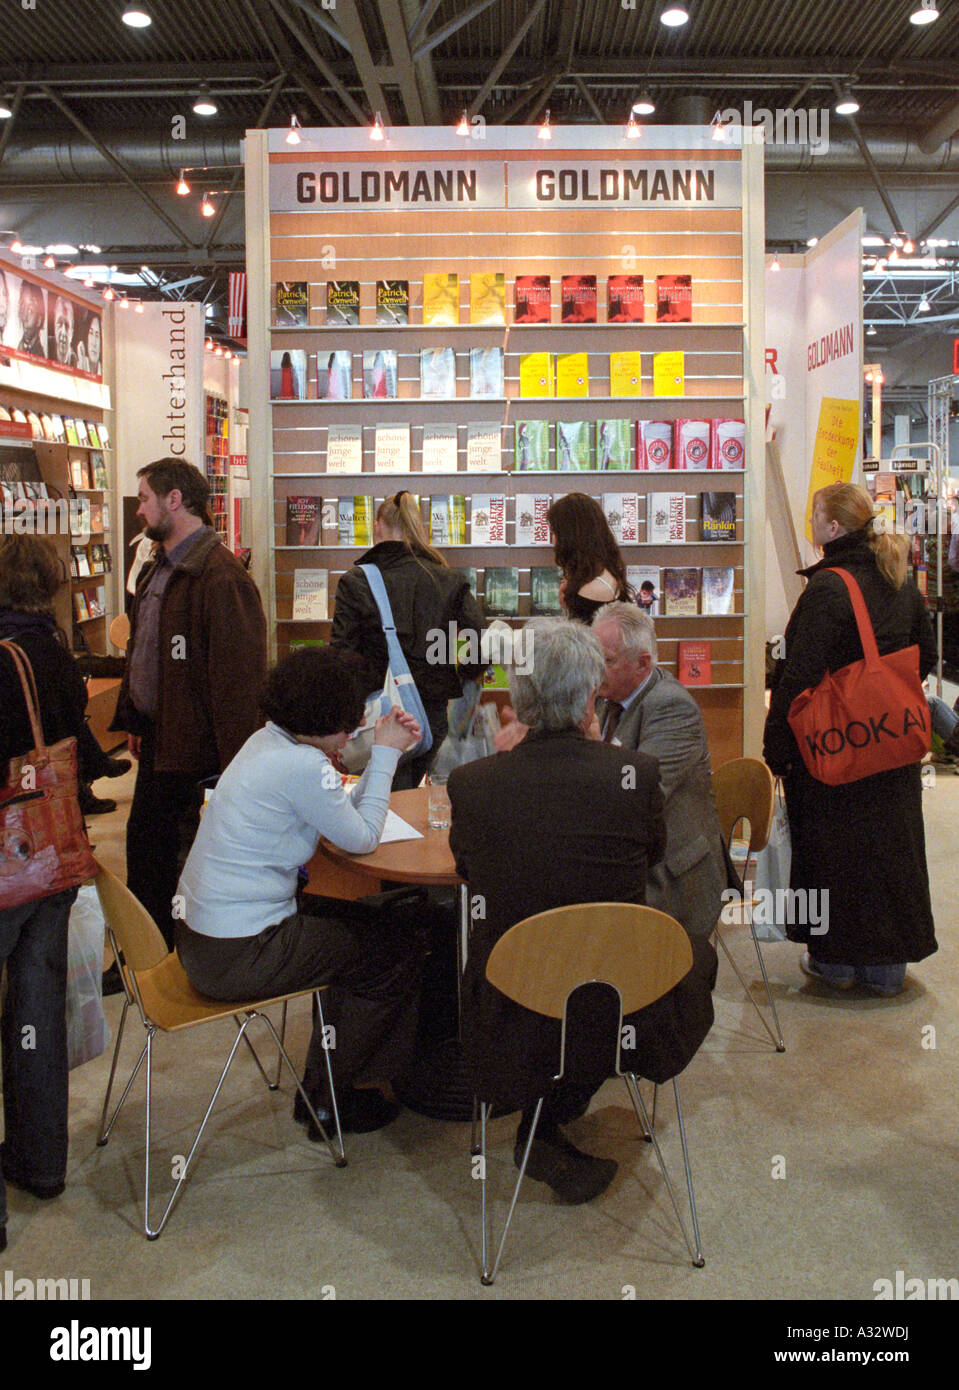 Leipzig Book Fair - visitors at the booth of Goldmann Verlag, Germany - Stock Image